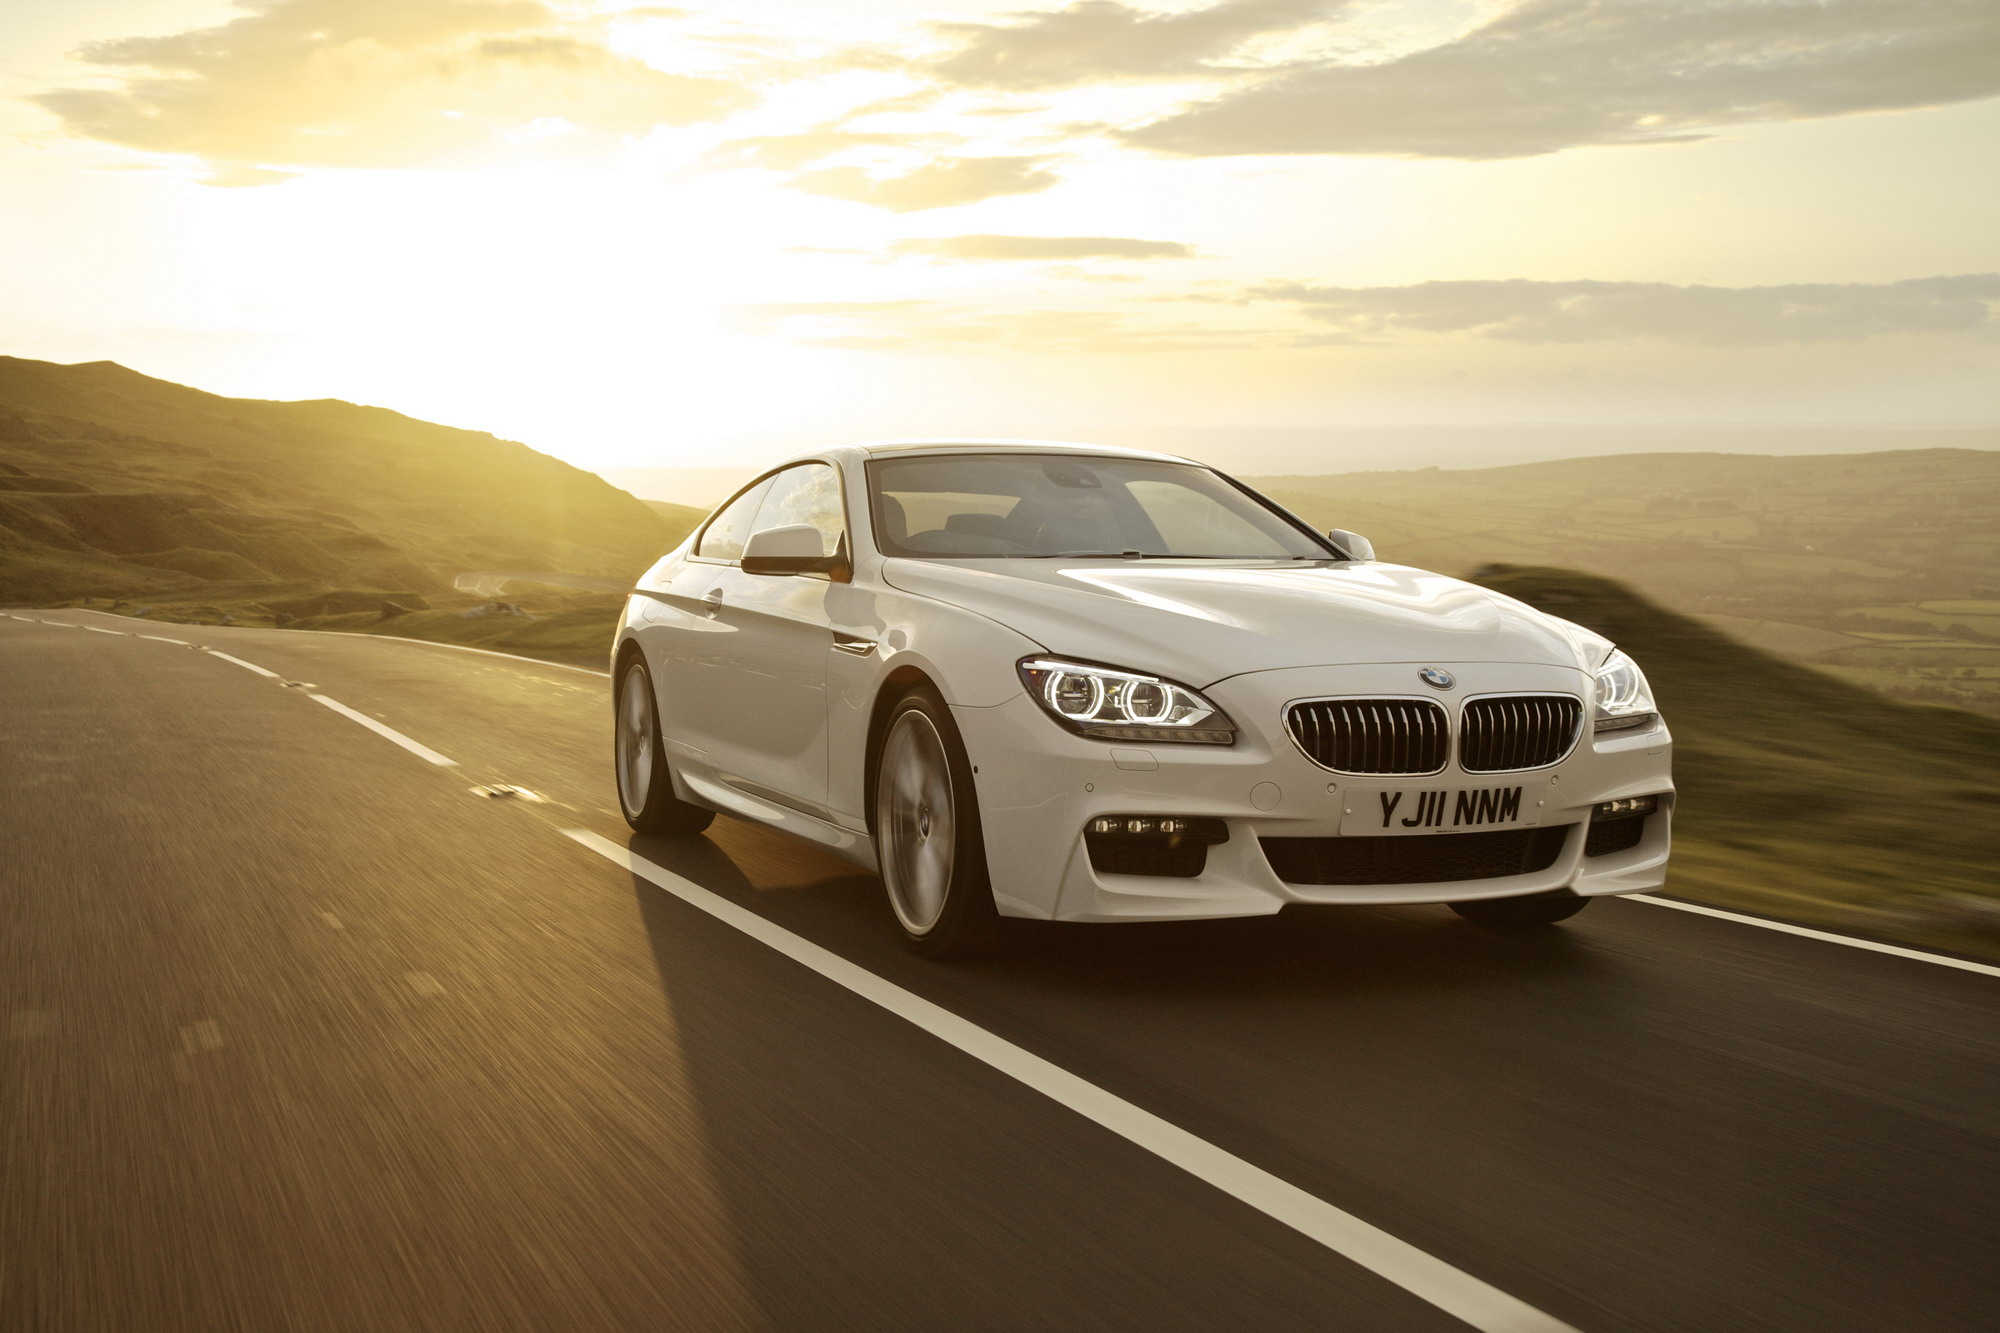 2012 BMW 650i Coupe Review - Top Speed